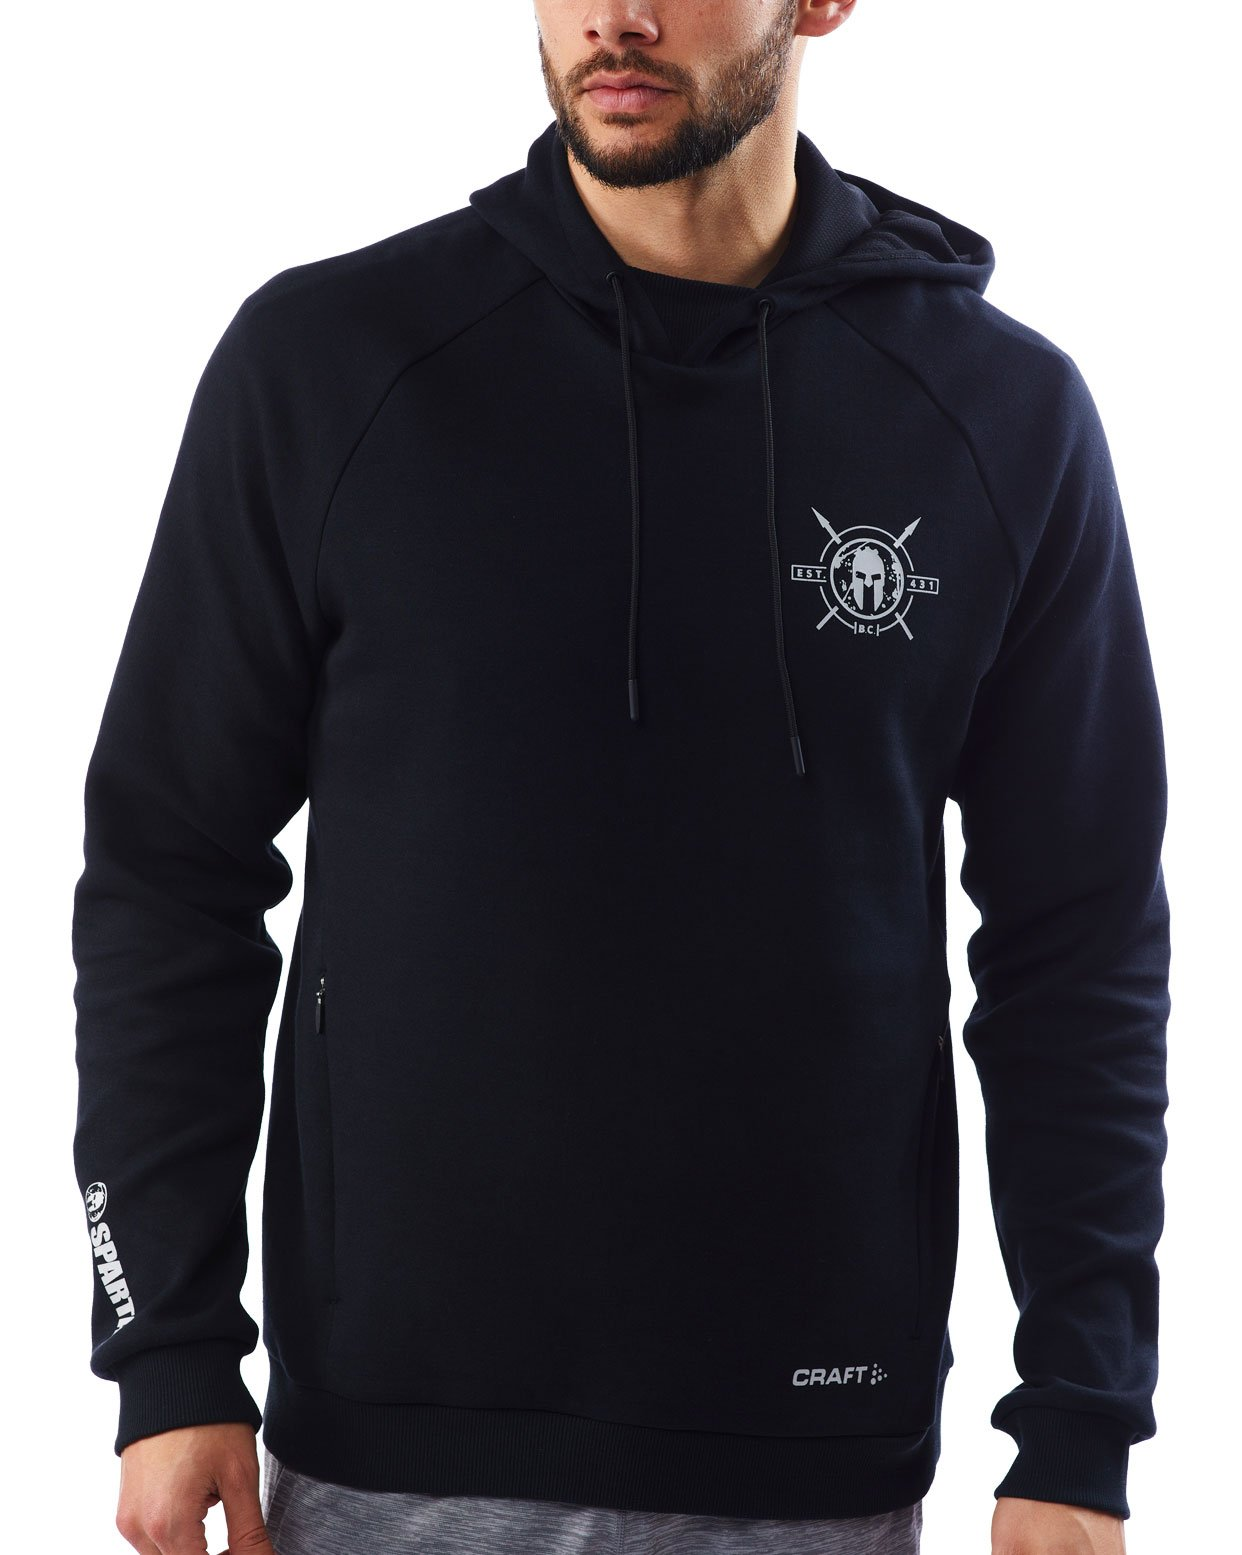 CRAFT SPARTAN By CRAFT District Pullover Hoodie - Men's Black S